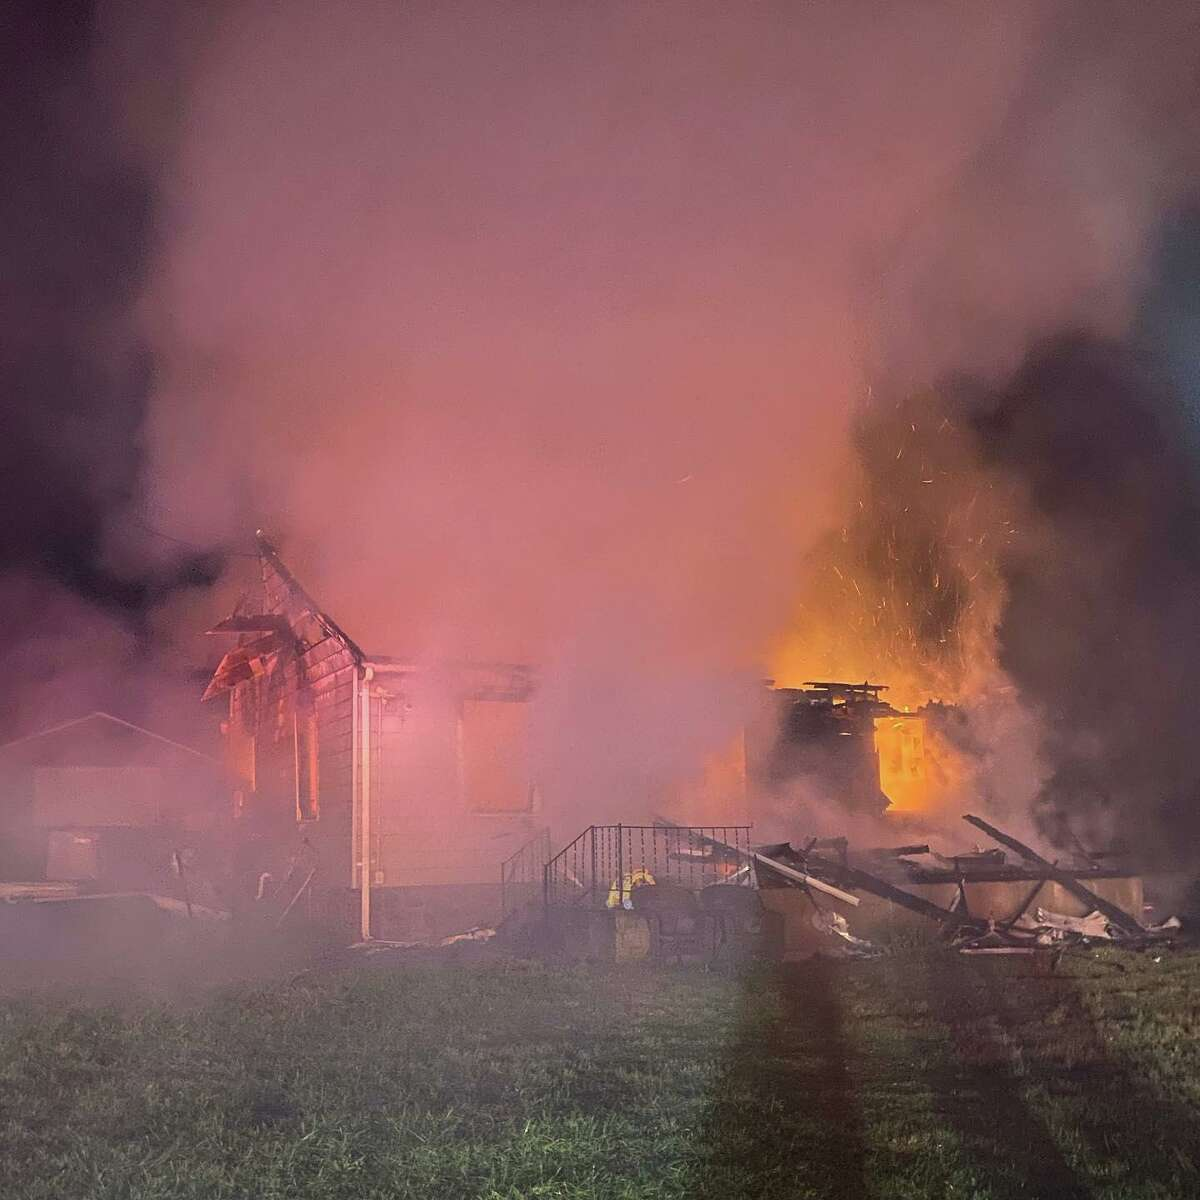 Crews extinguished a fire on Colony Road in Seymour, Conn., near the Ansonia line on Saturday, Sept. 18, 2021.